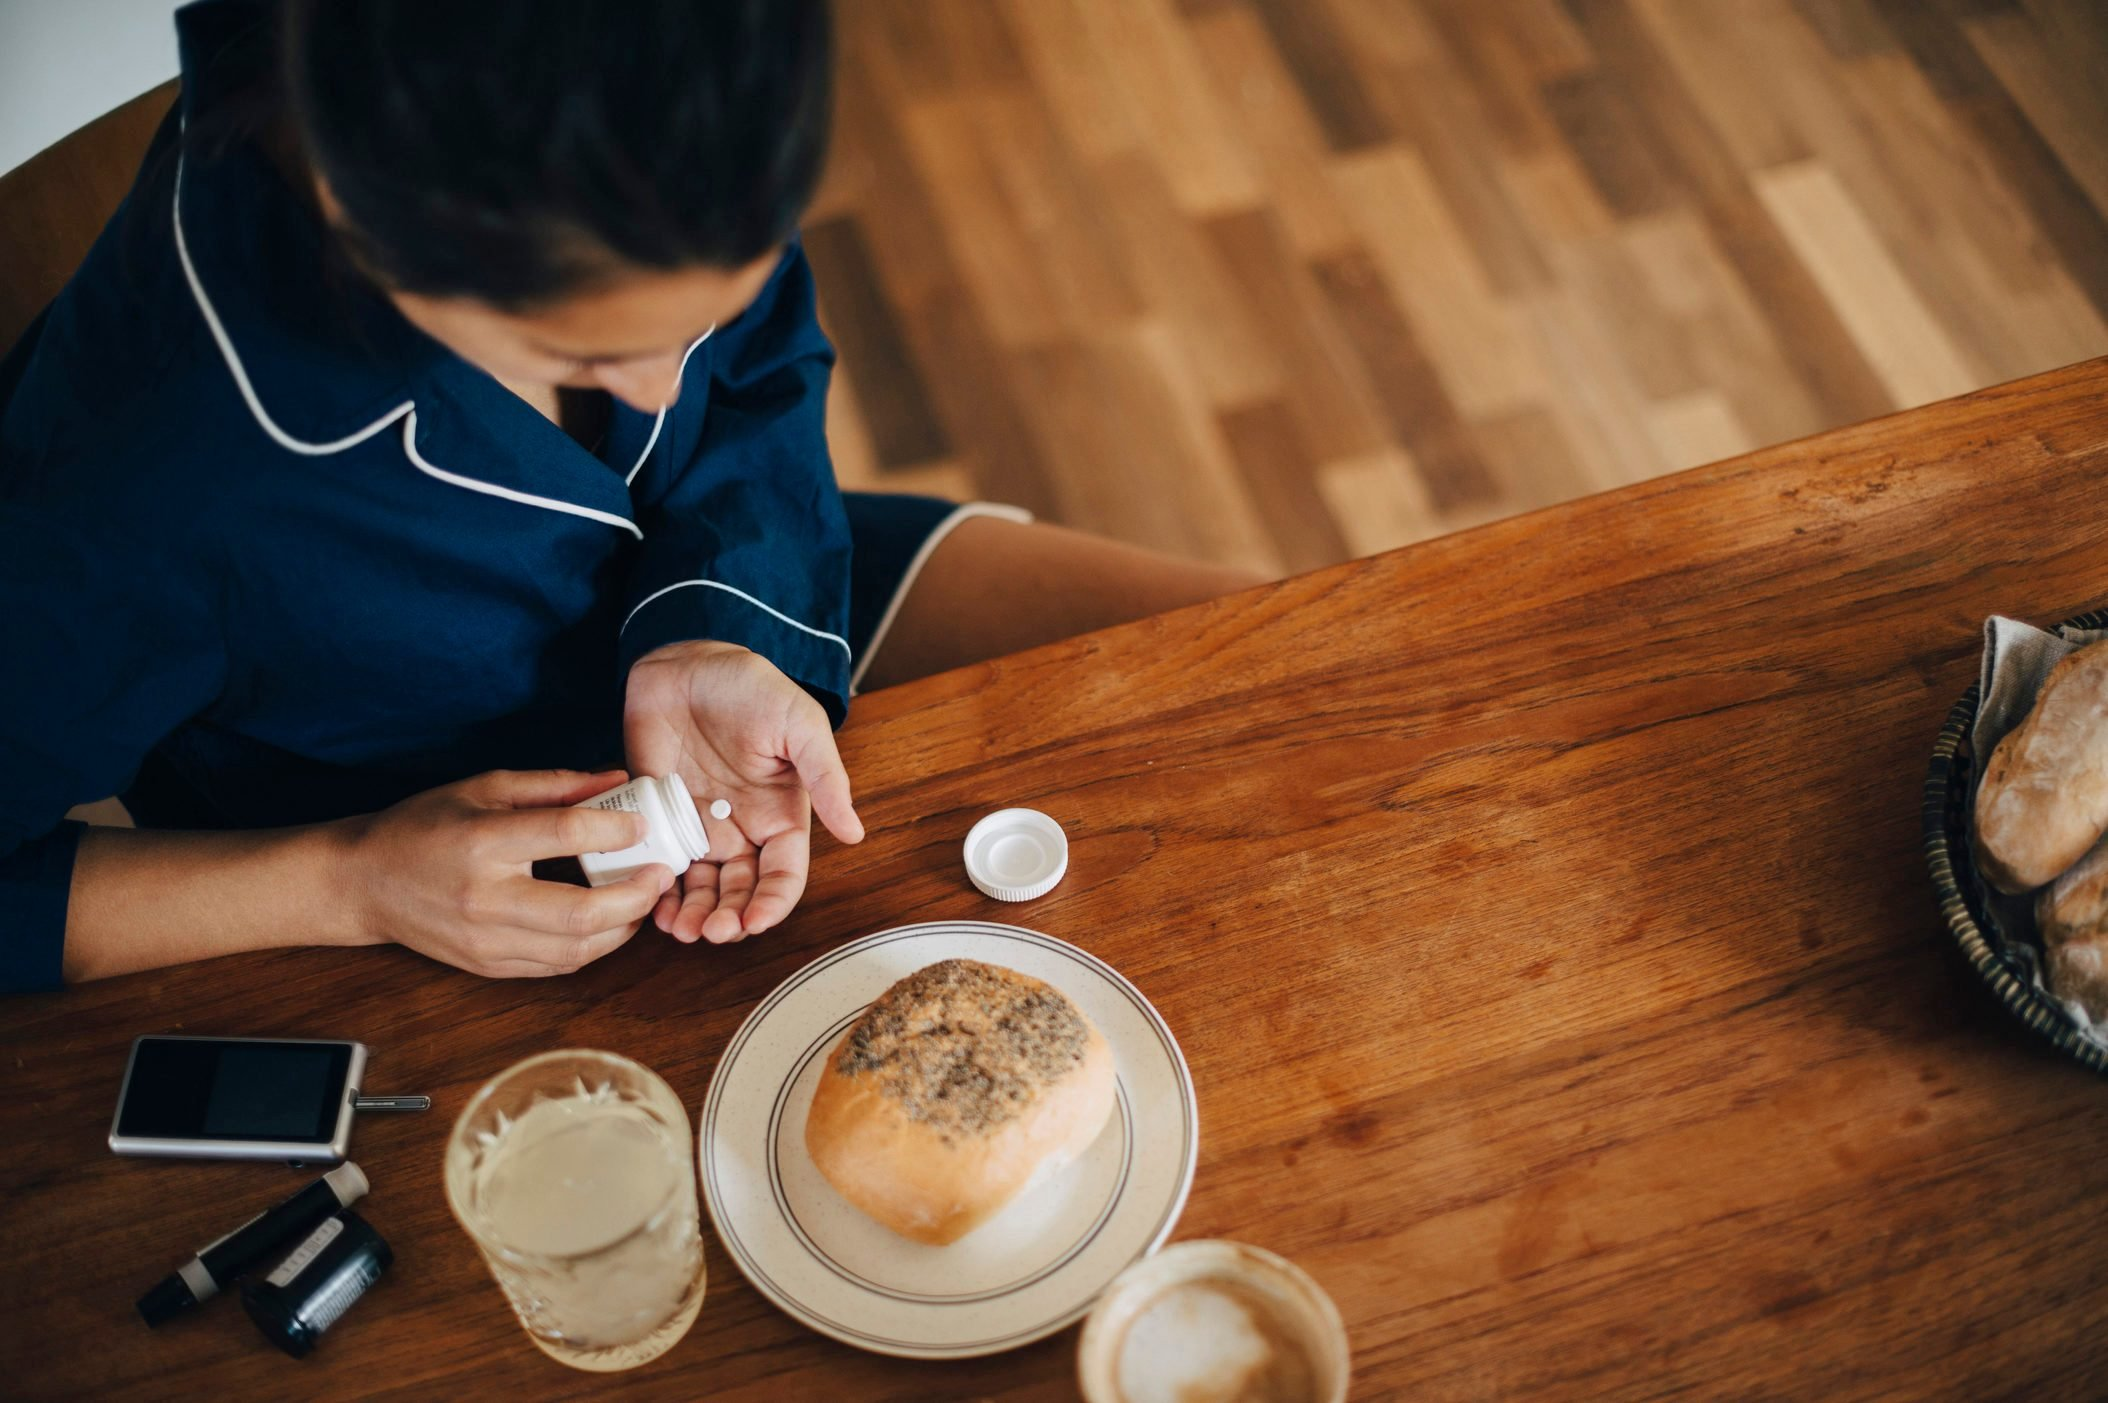 High angle view of woman taking medicine while having breakfast at table